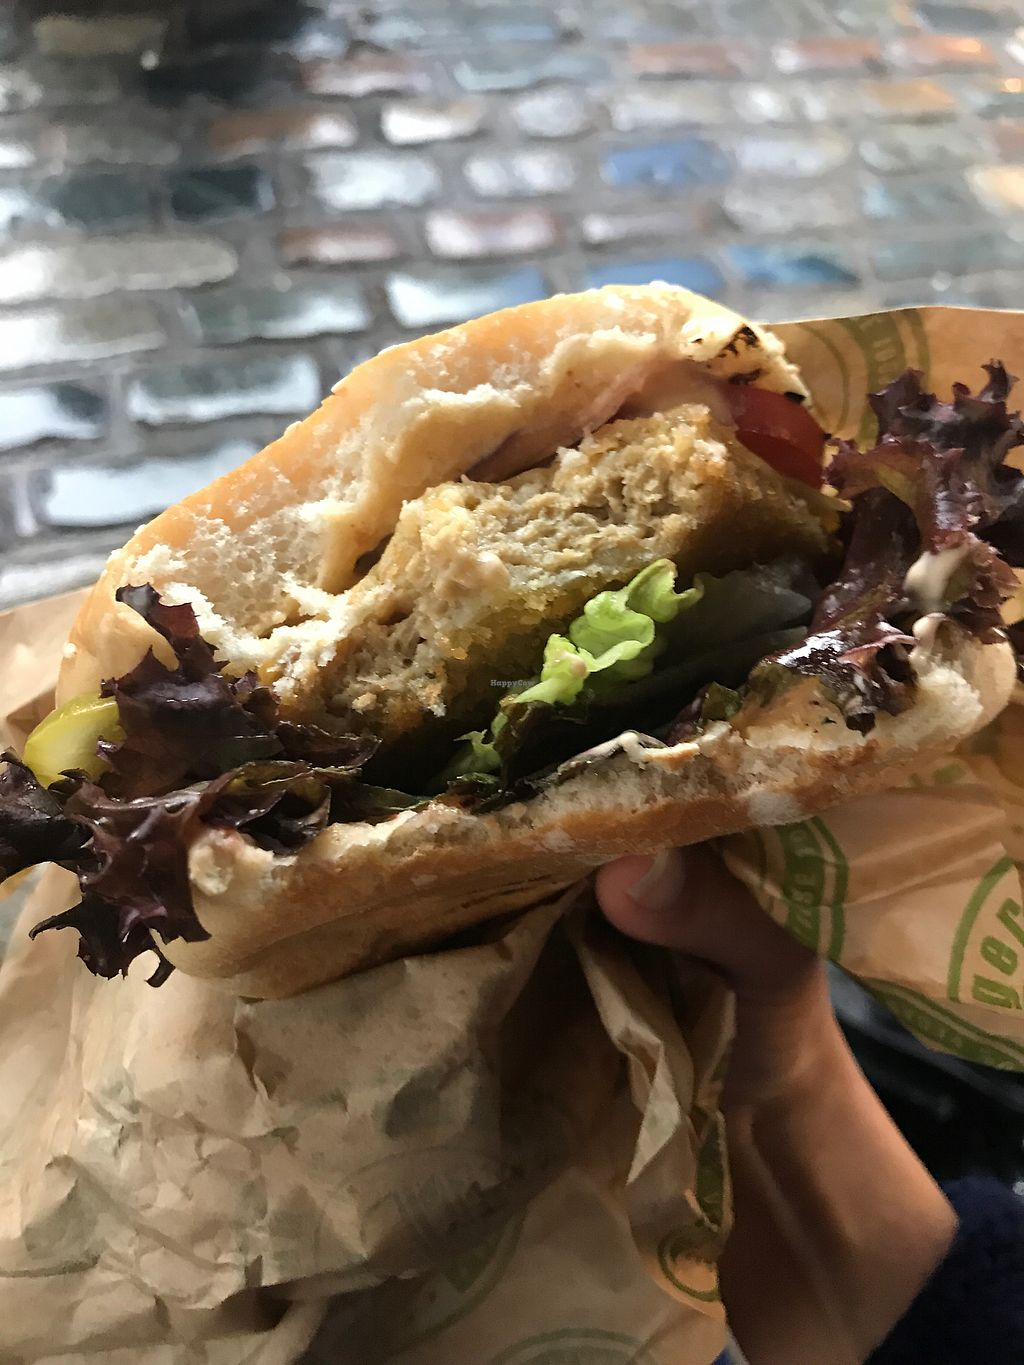 """Photo of Vburger  by <a href=""""/members/profile/AnaBanannaPancake"""">AnaBanannaPancake</a> <br/>Schnitzel burger  <br/> November 12, 2017  - <a href='/contact/abuse/image/95197/324651'>Report</a>"""